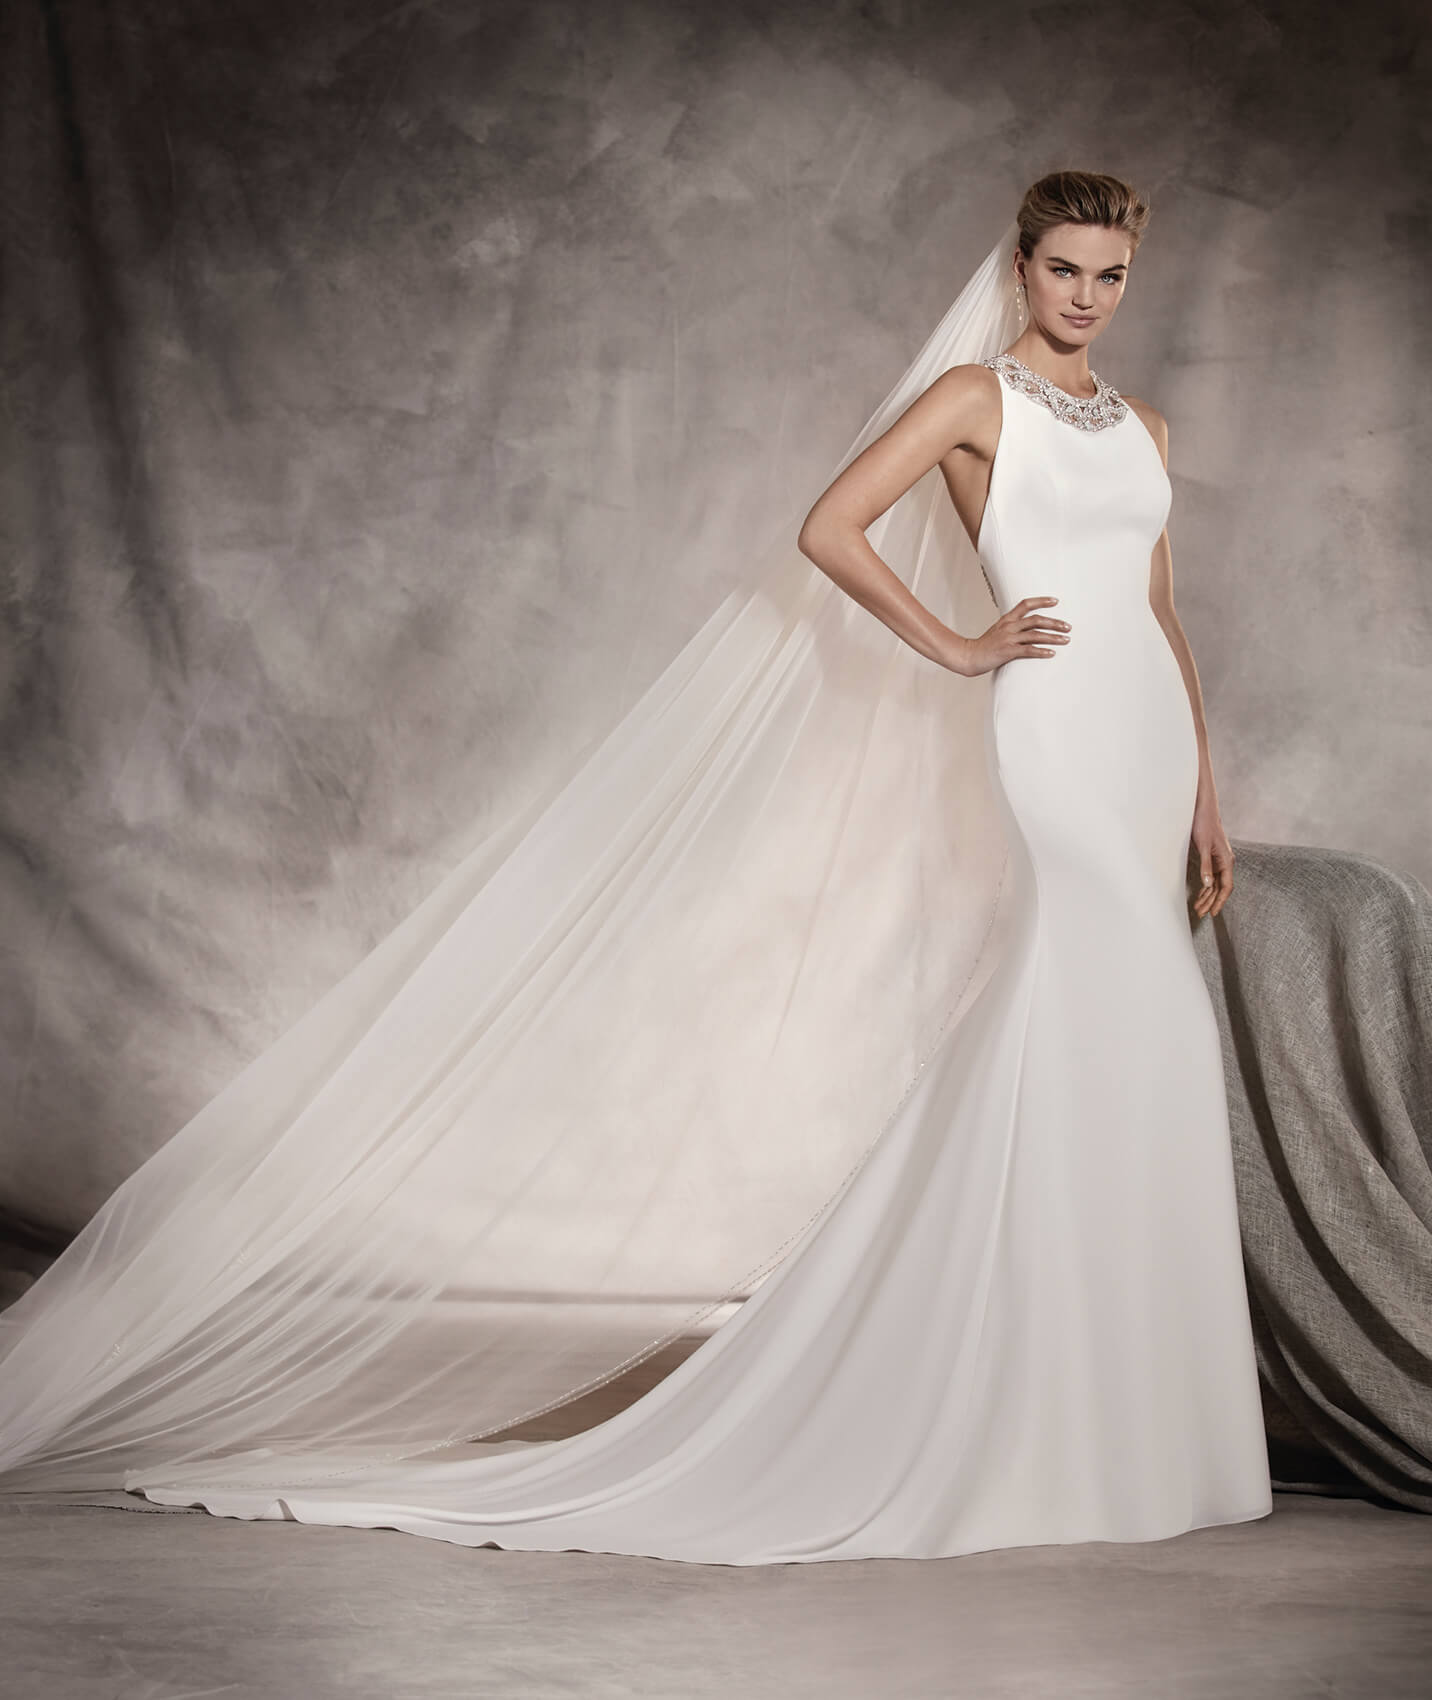 Pronovias wedding dresses spanish style designer gowns essex for Pronovias wedding dresses uk